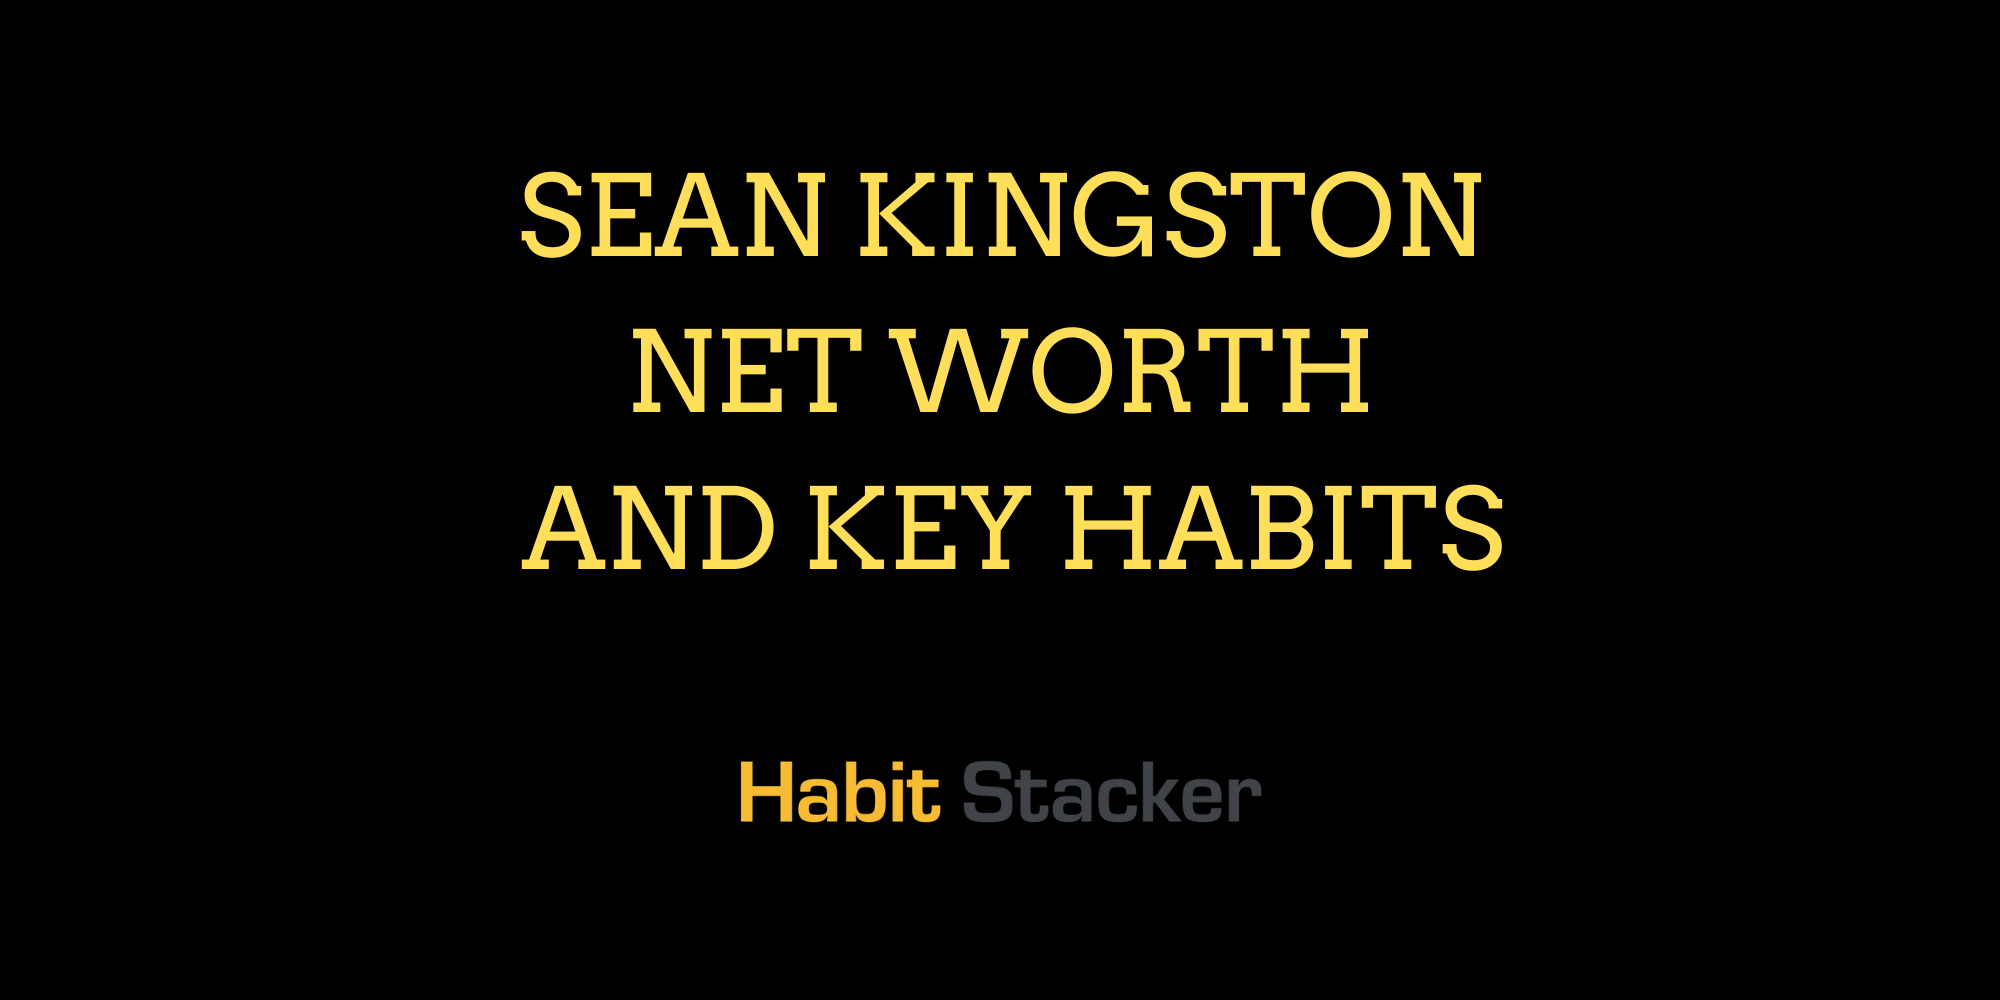 Sean Kingston Net Worth and Key Habits